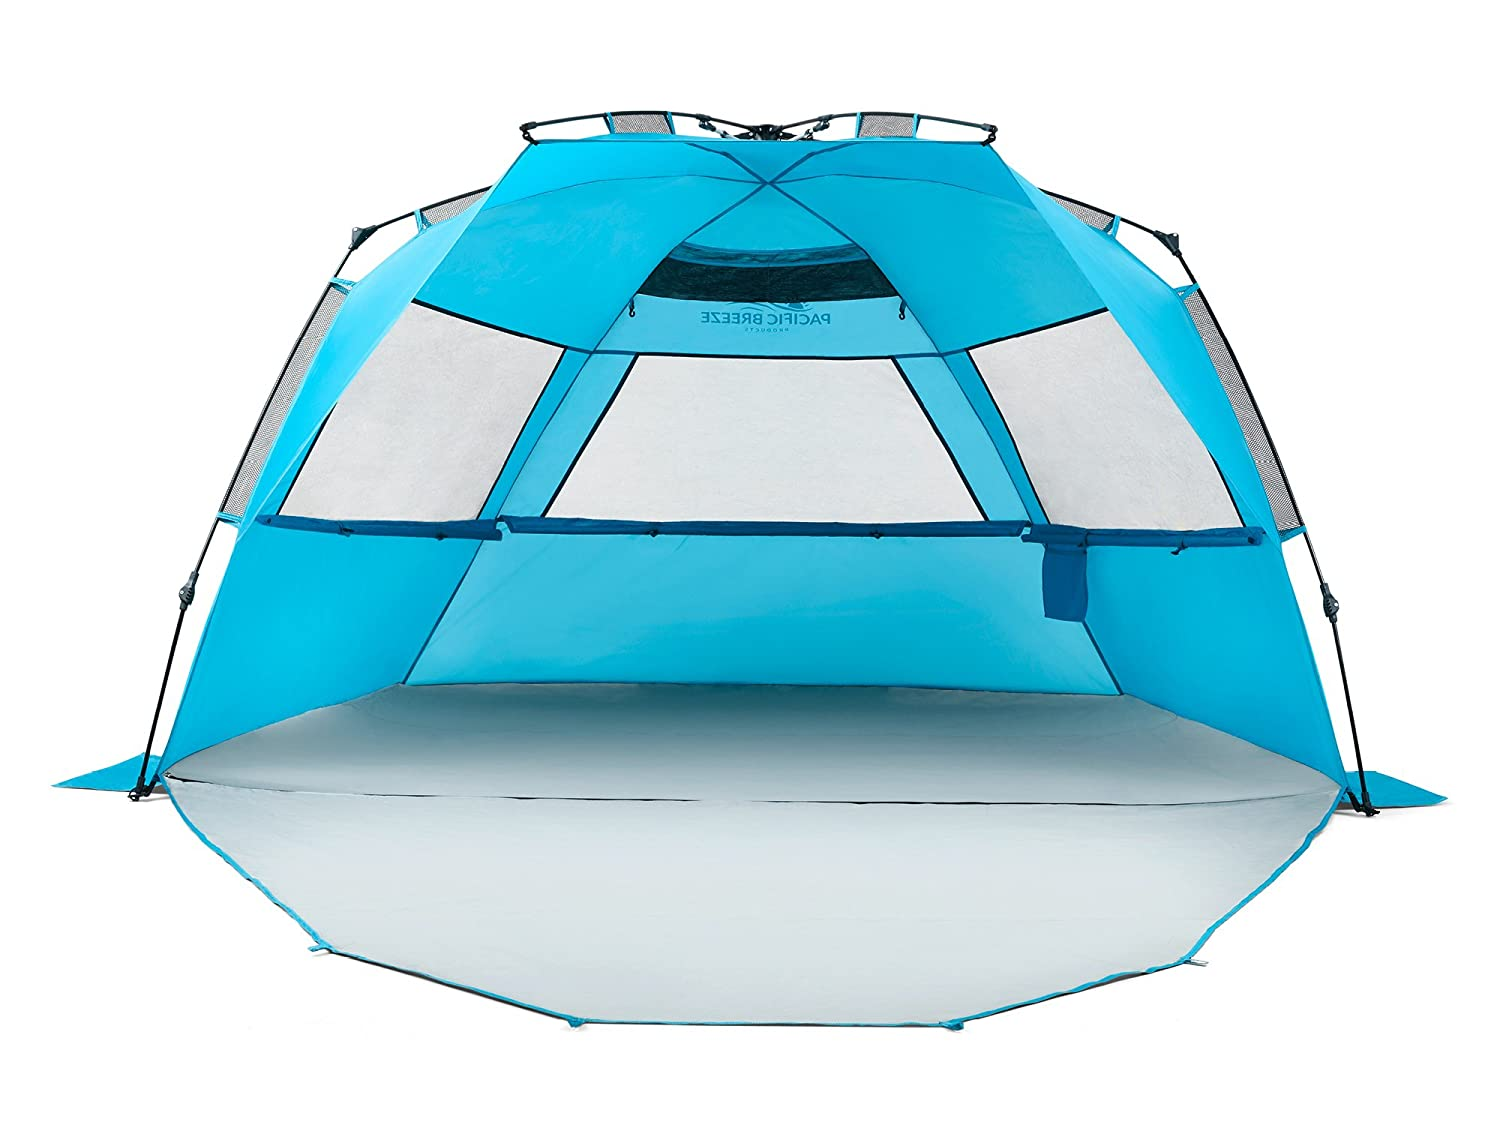 Pacific Breeze Easy Setup Beach Tent Deluxe Xl Hiking